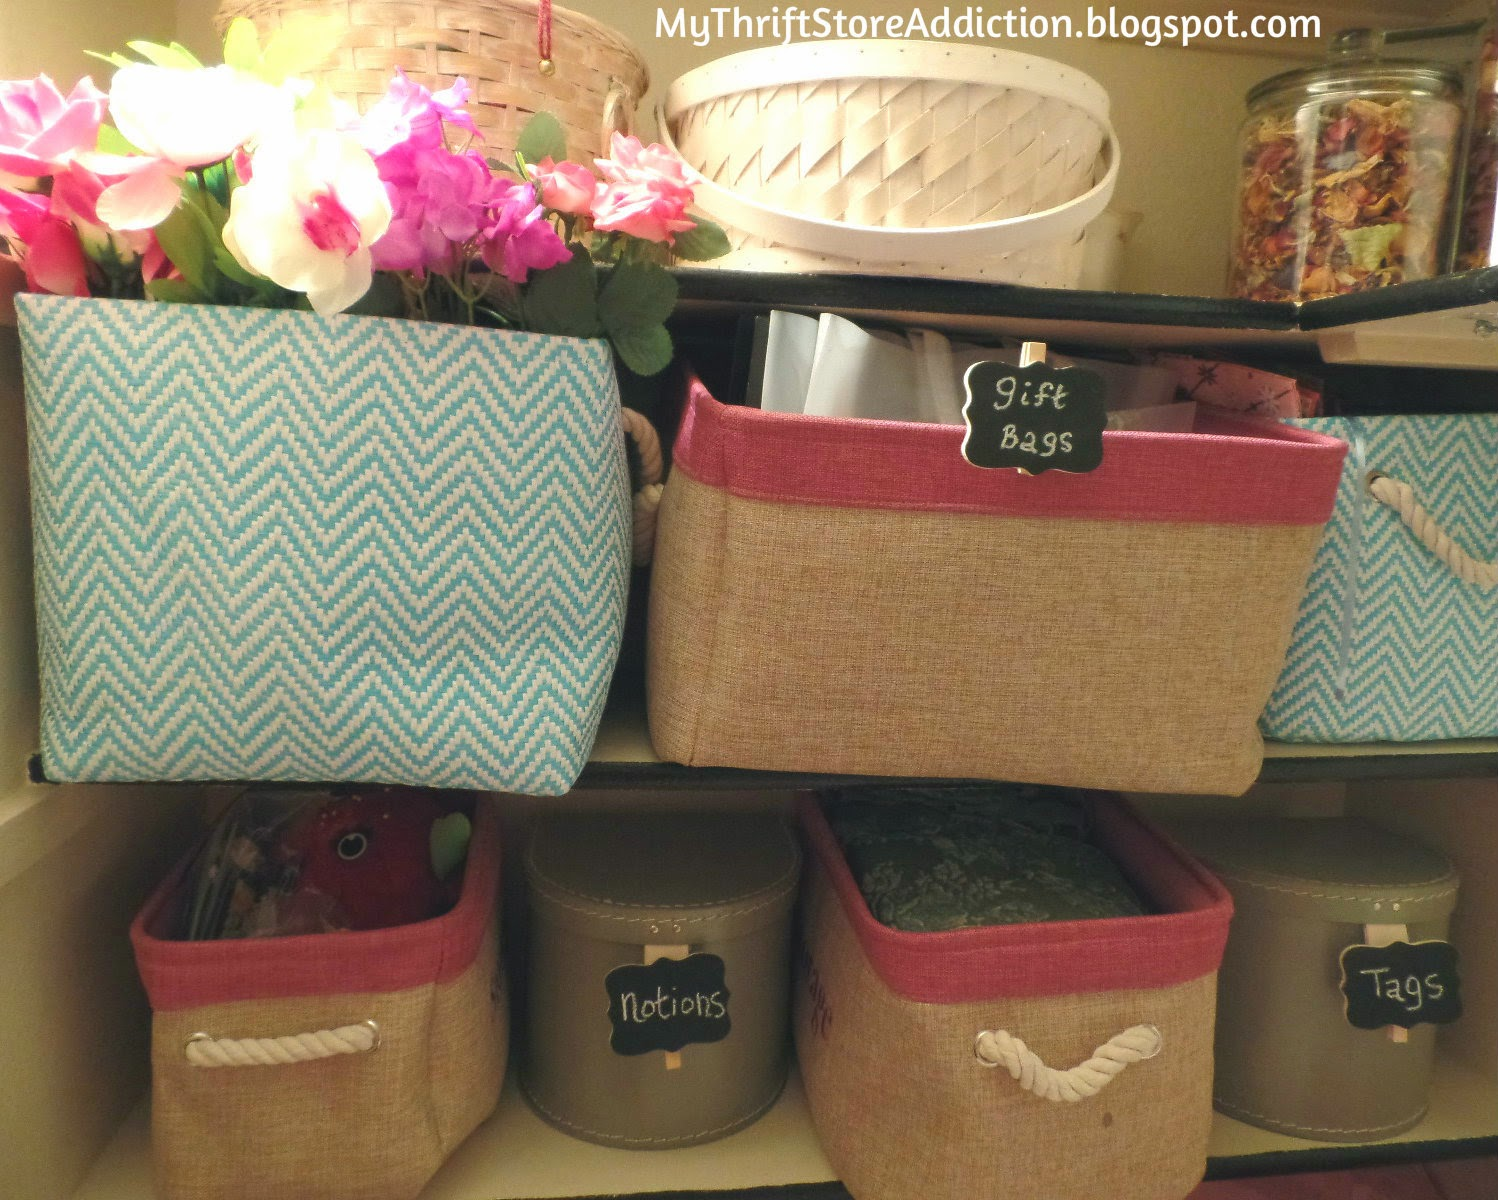 Baskets for organization